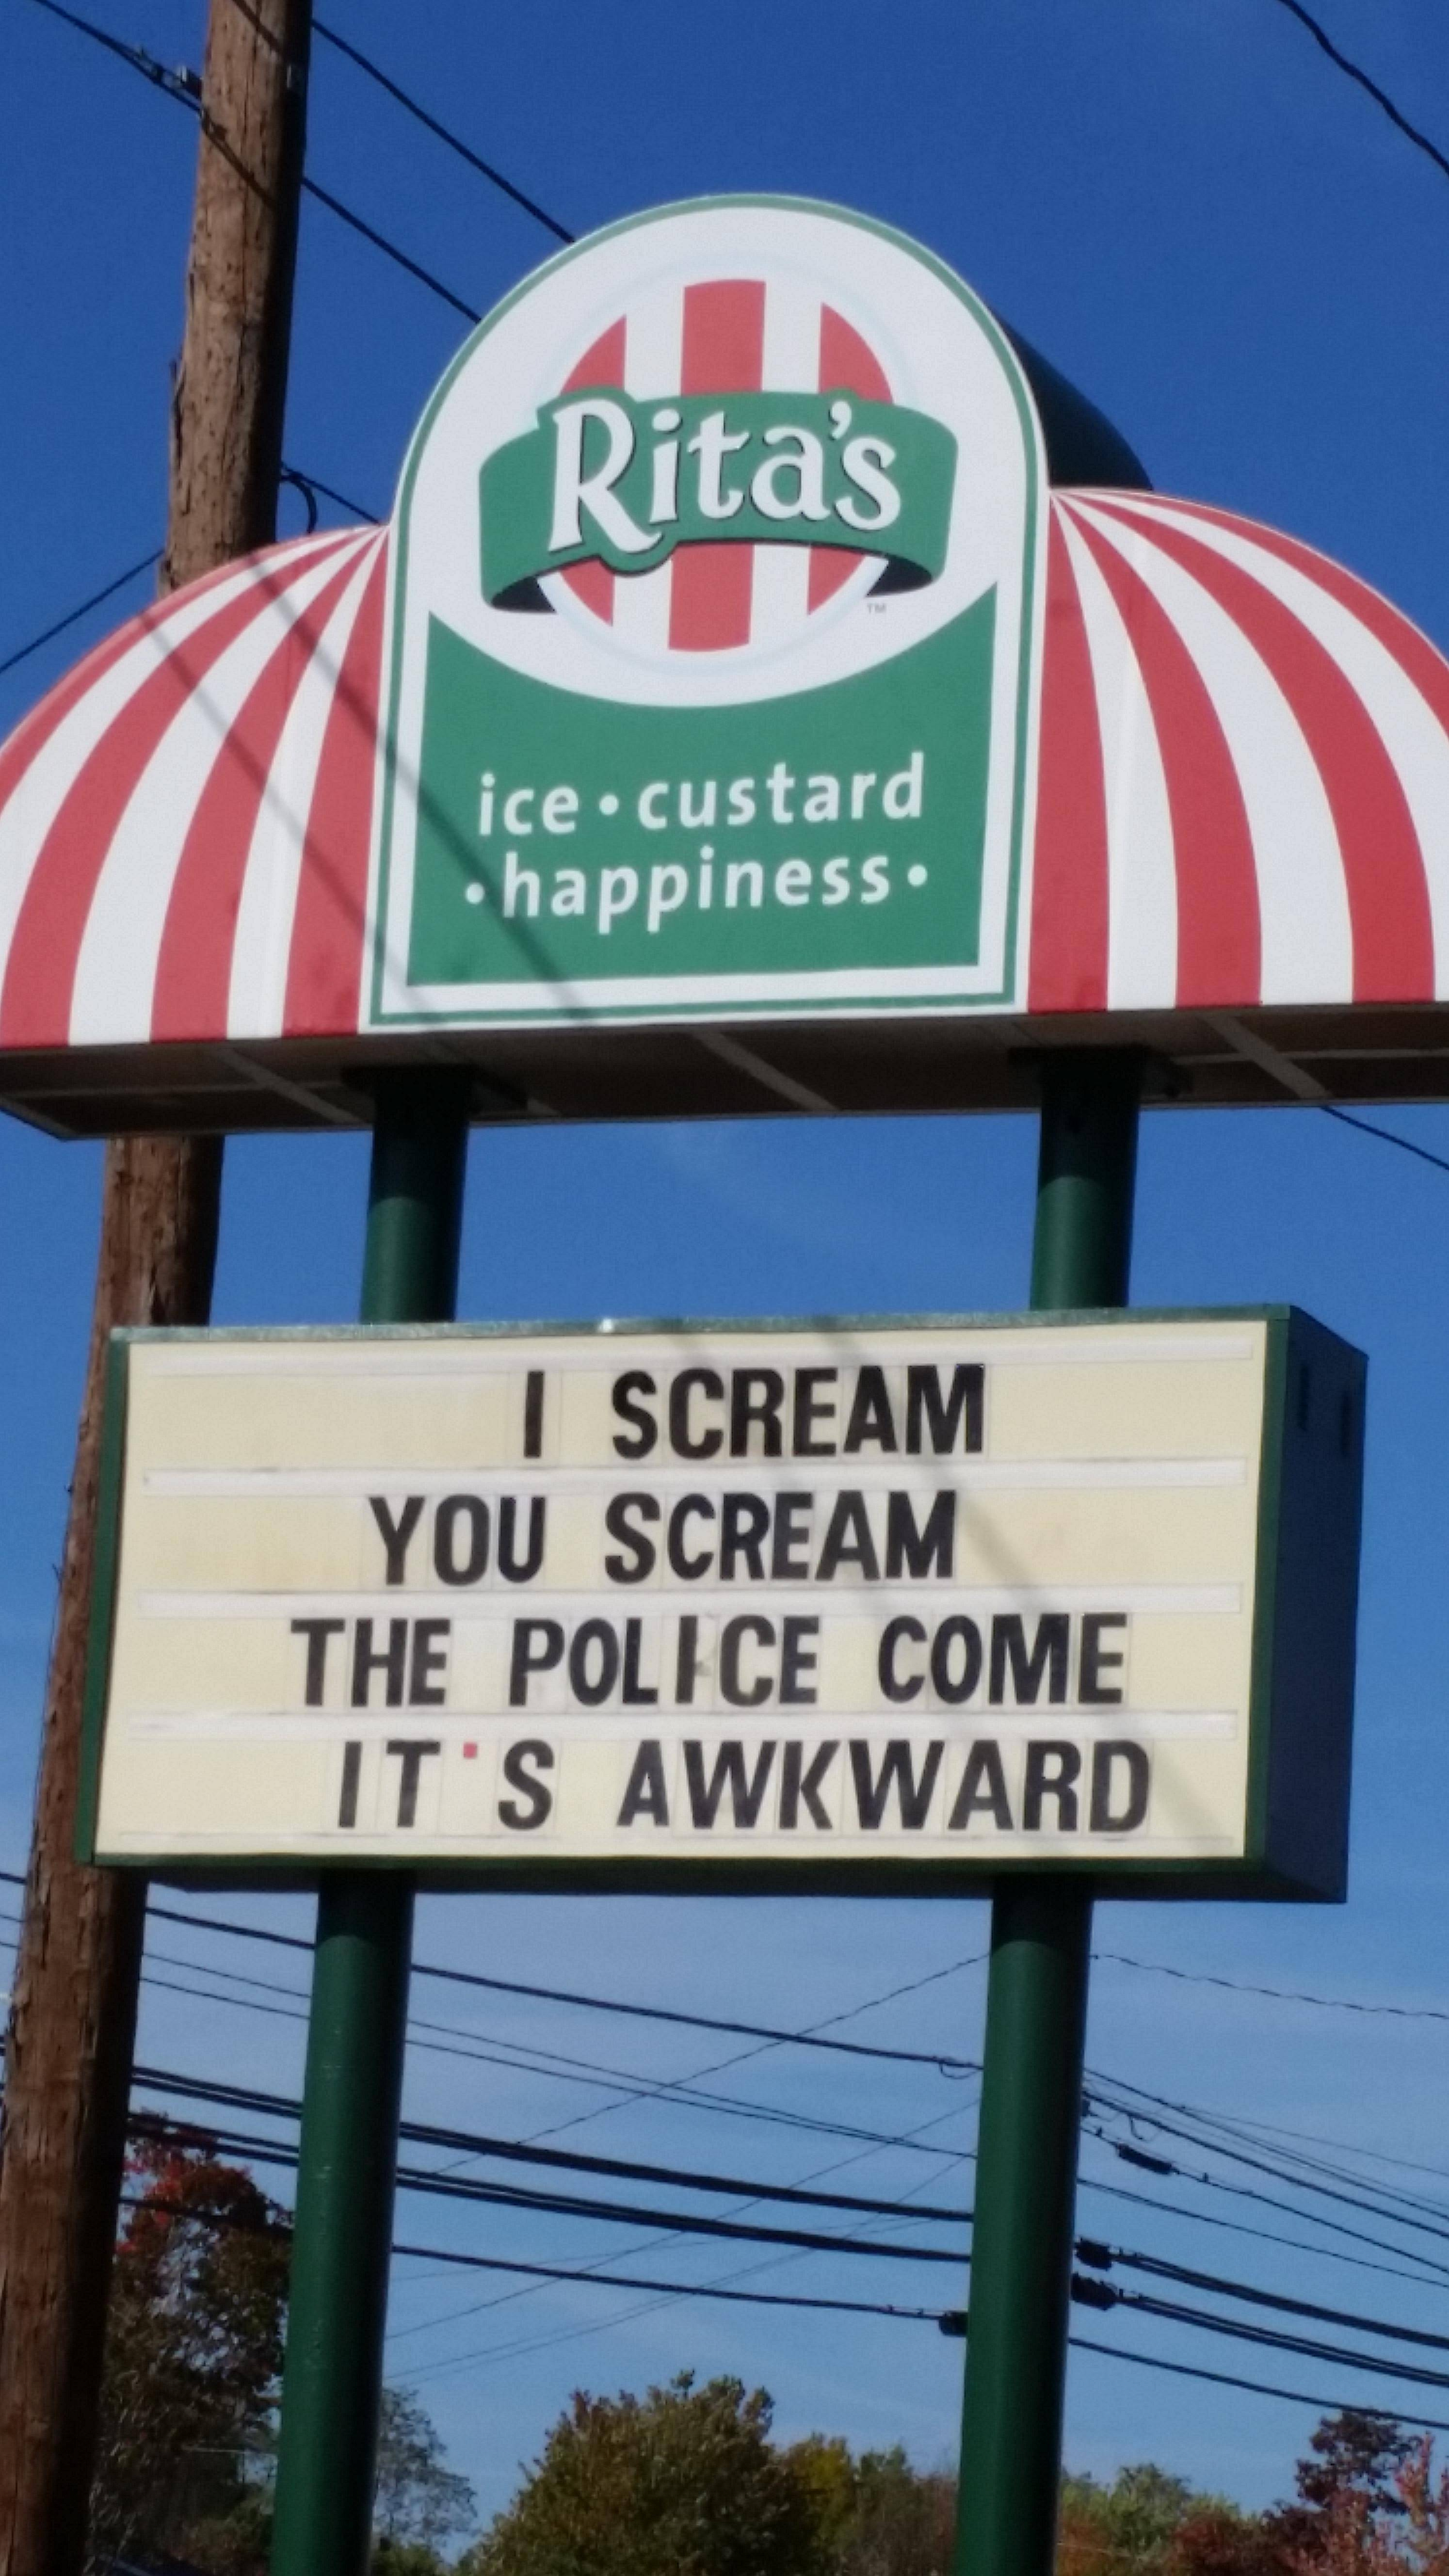 Most Awkward Way to Advertise Your Ice Cream Shop